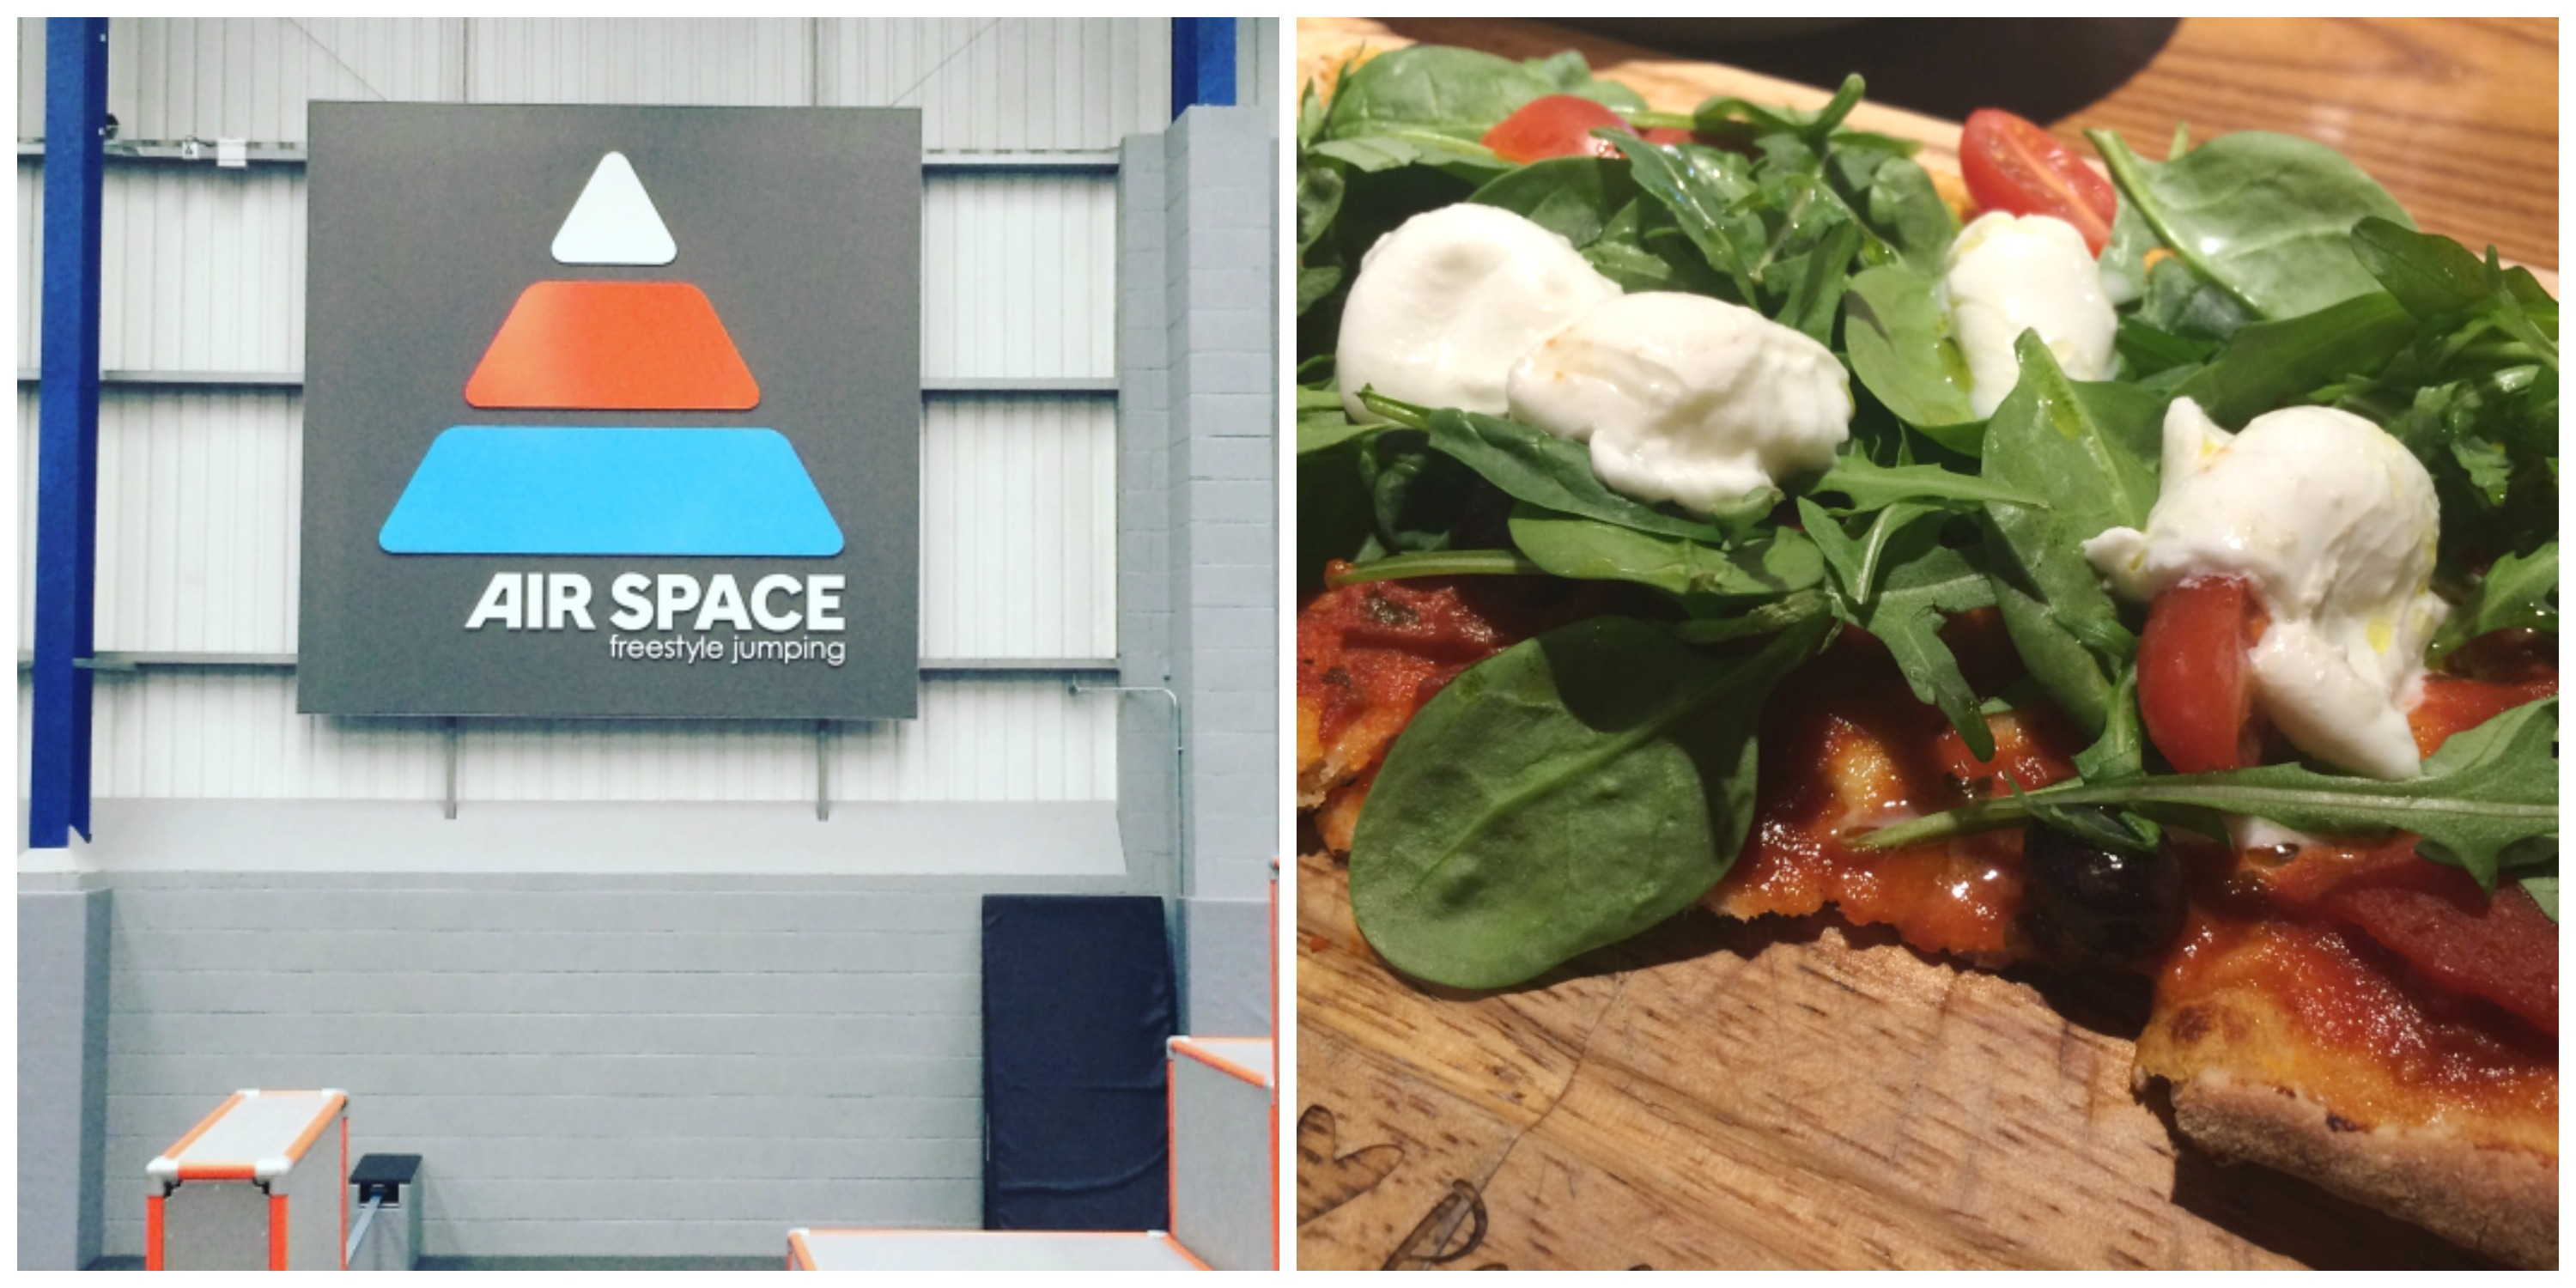 Airspace & Pizza